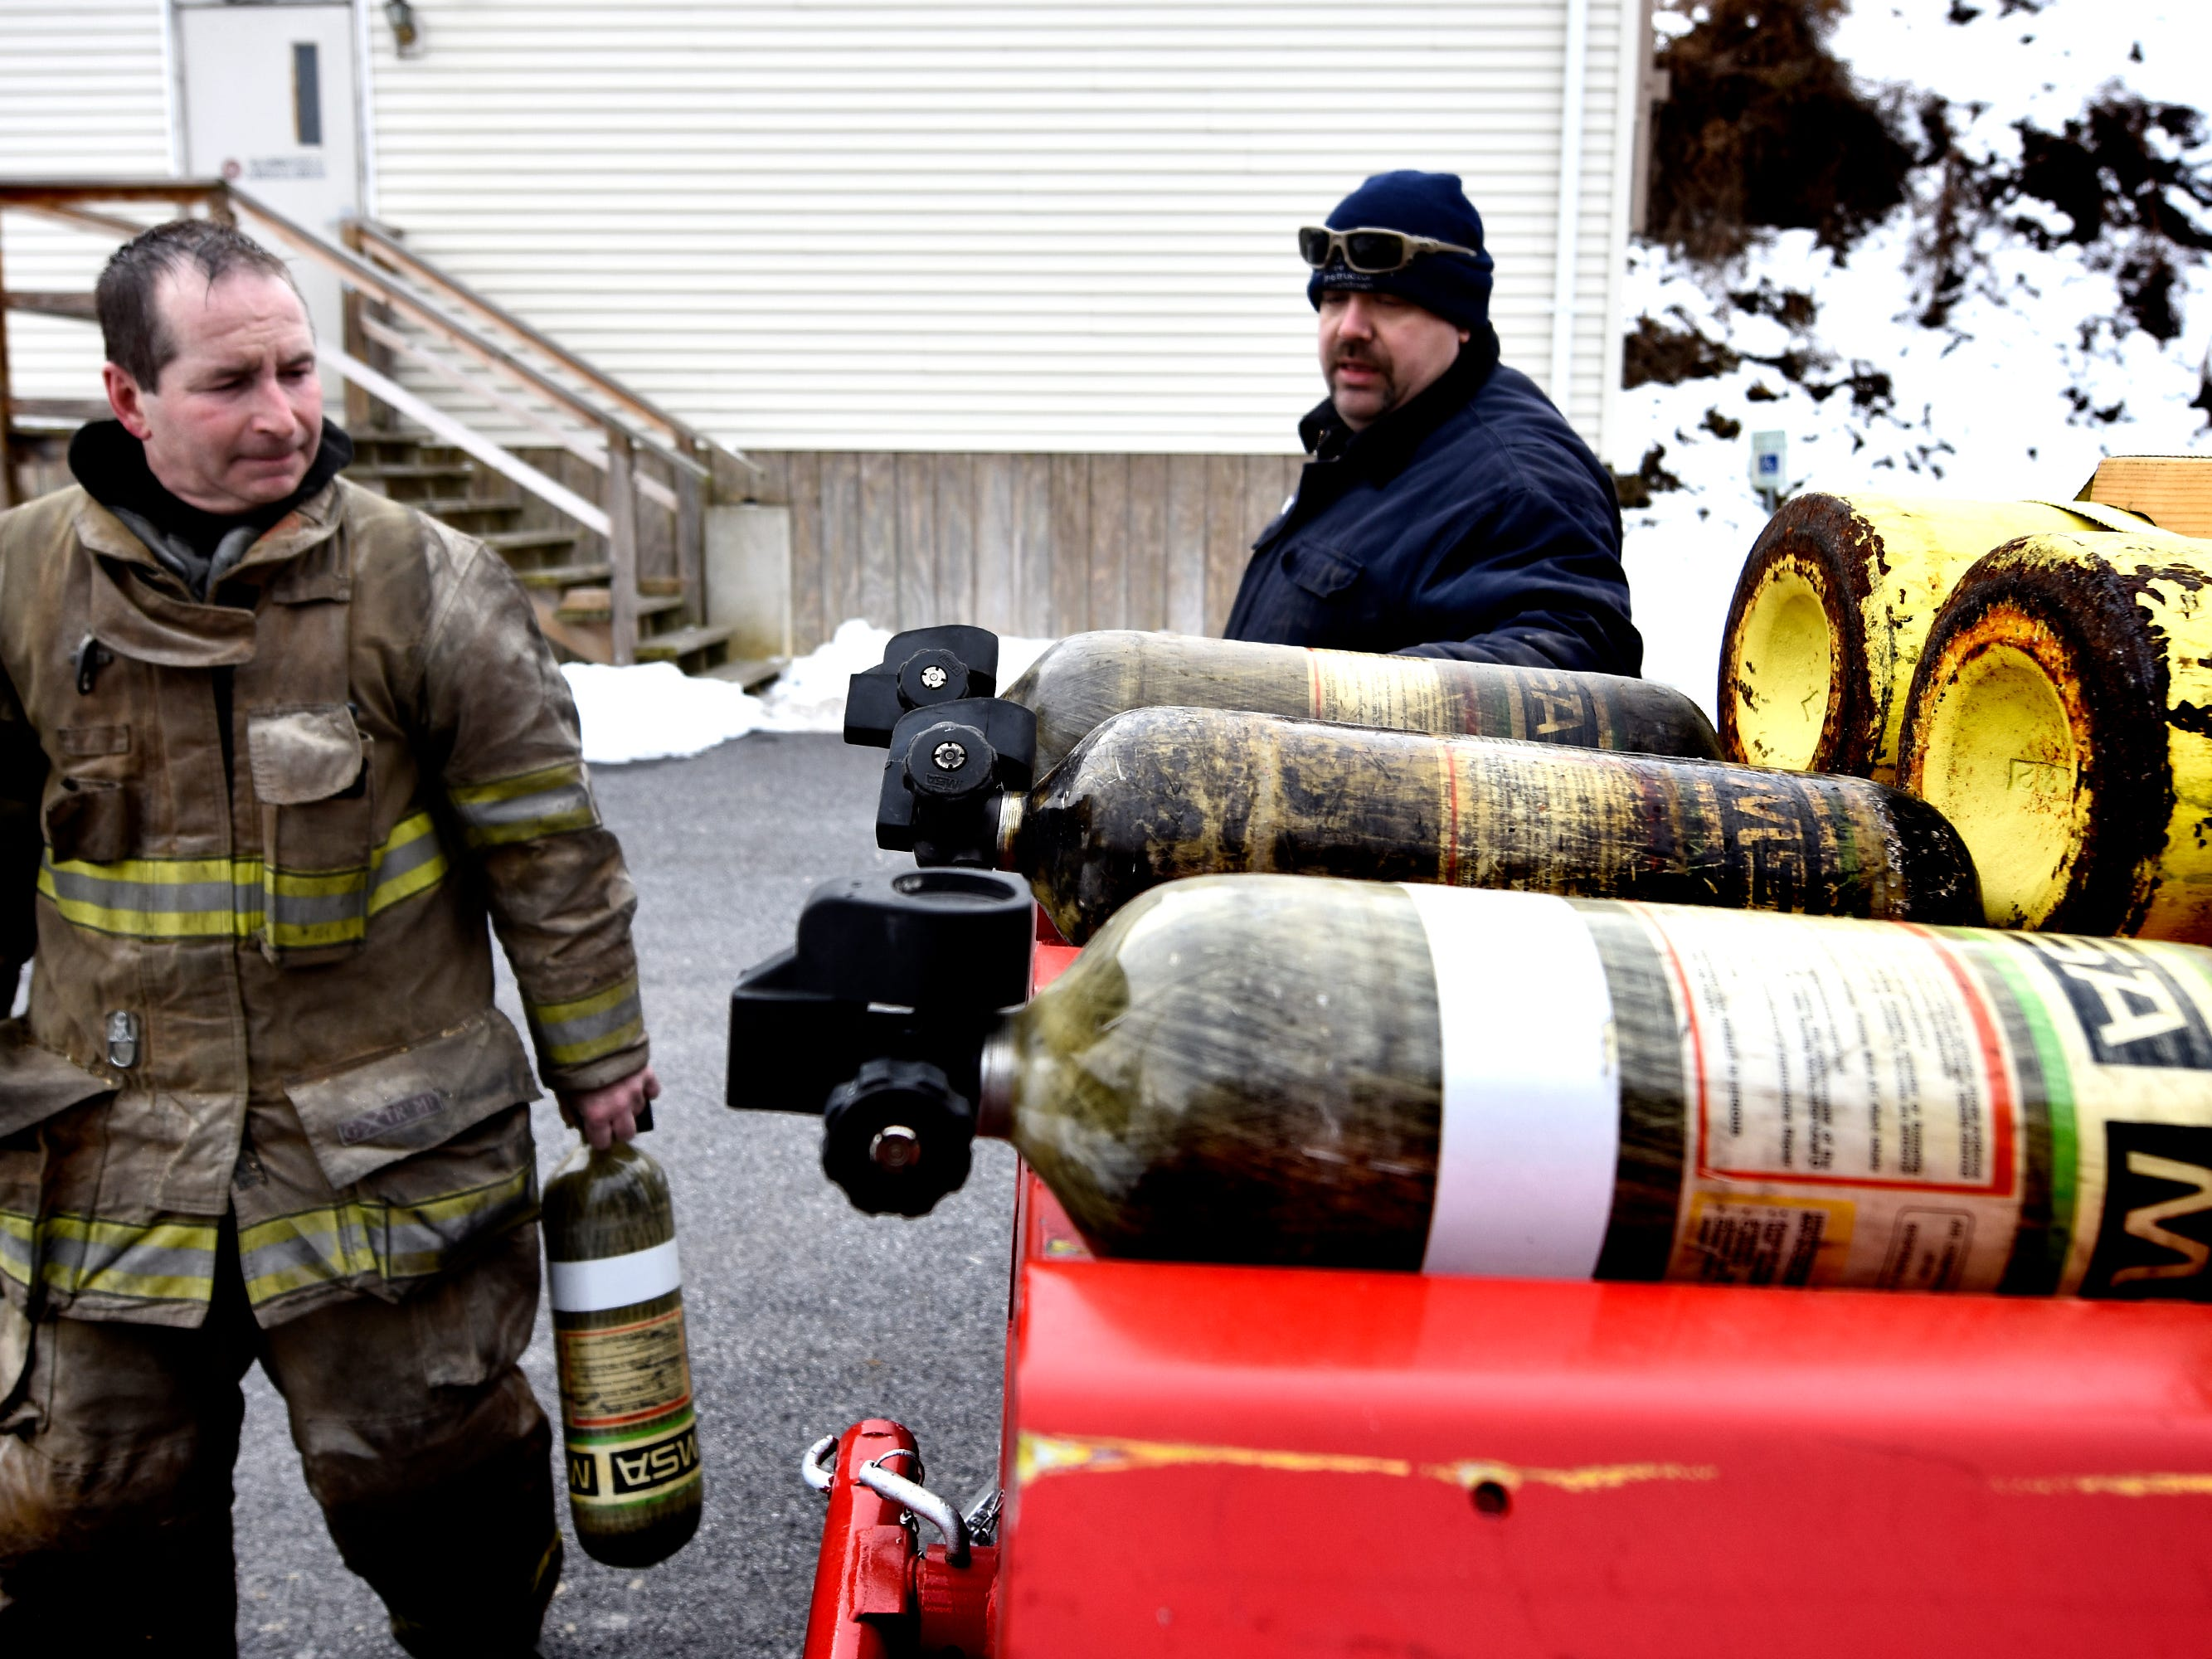 York County Fire School adjunct instructor Tom Rigling, left, and school administrator John Livingston organize air tanks while training York County Prison workers at the school Friday, March 8, 2019. Members of the prison's 30-member Fire Emergency Response Team were completing a 40-hour fire training course there. The FERT team is designed to control fire emergencies onsite prior to the arrival of firefighters. Bill Kalina photo